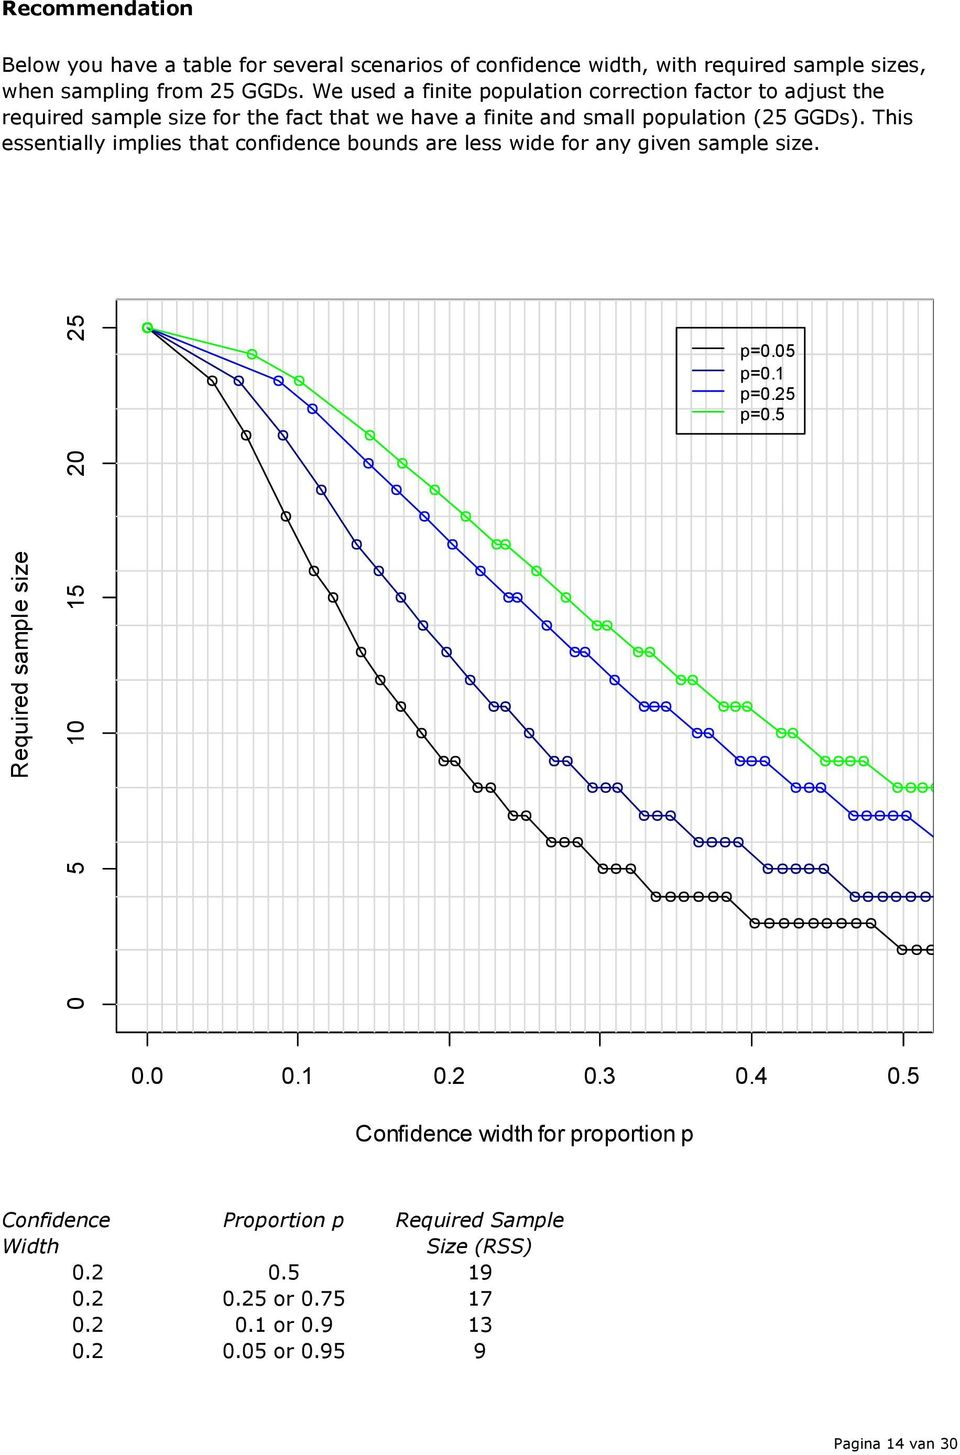 We used a finite population correction factor to adjust the required sample size for the fact that we have a finite and small population (25 GGDs).